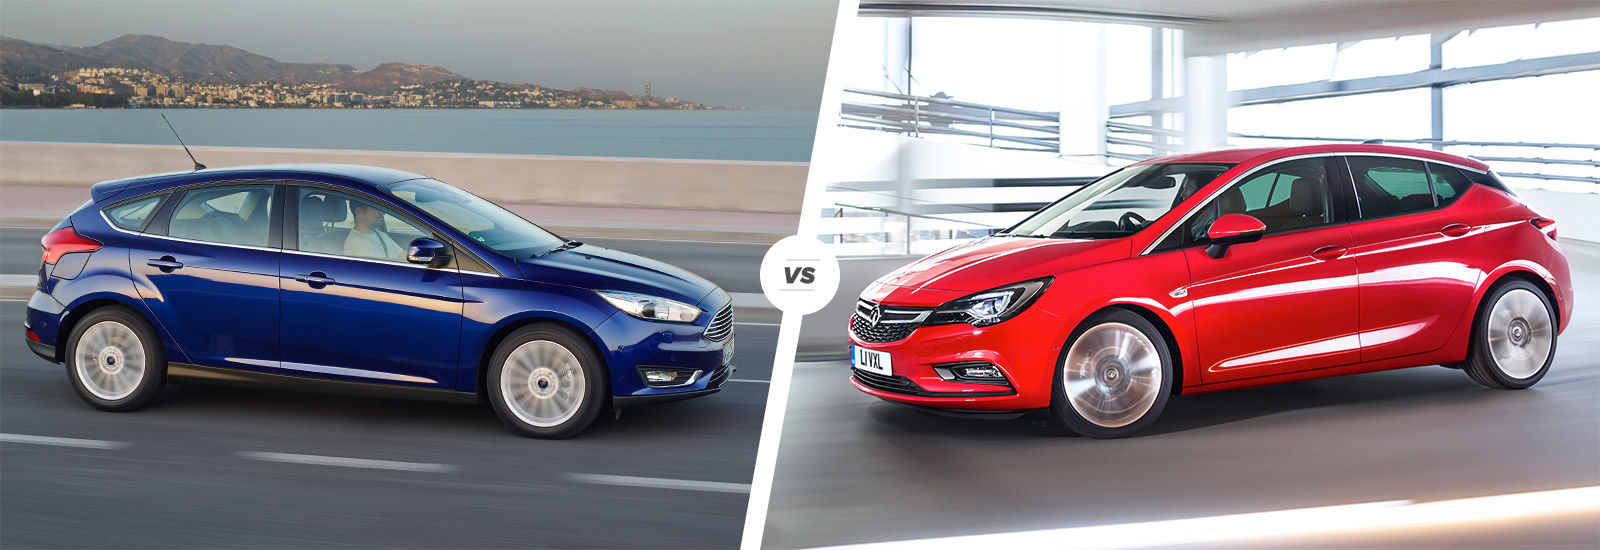 Ford Focus vs Vauxhall Astra comparison  carwow